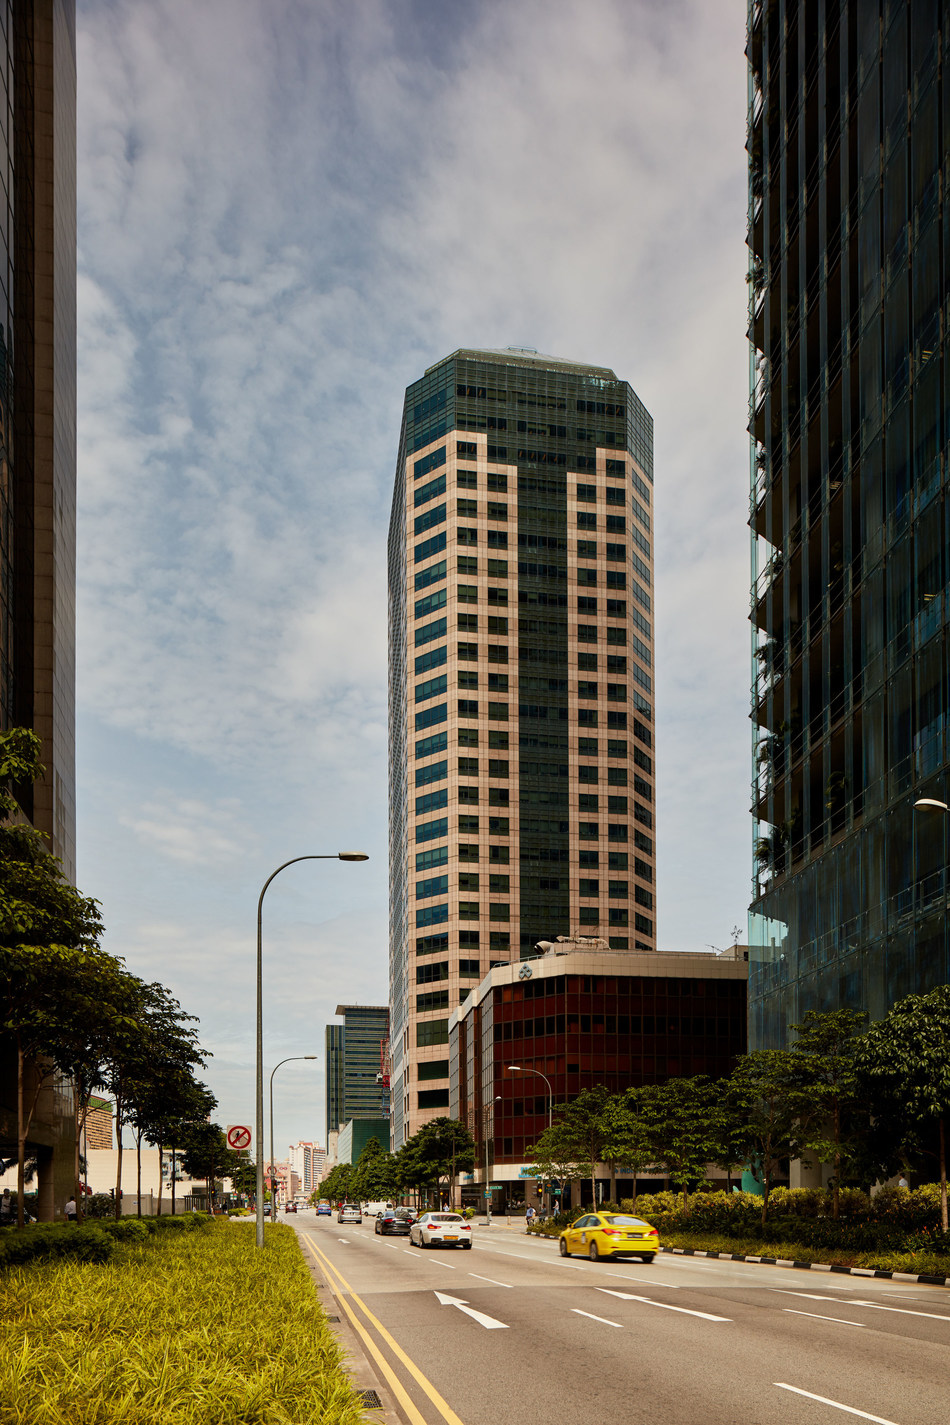 Manulife Acquires 8 Cross Street In Singapore (CNW Group/Manulife Financial Corporation)